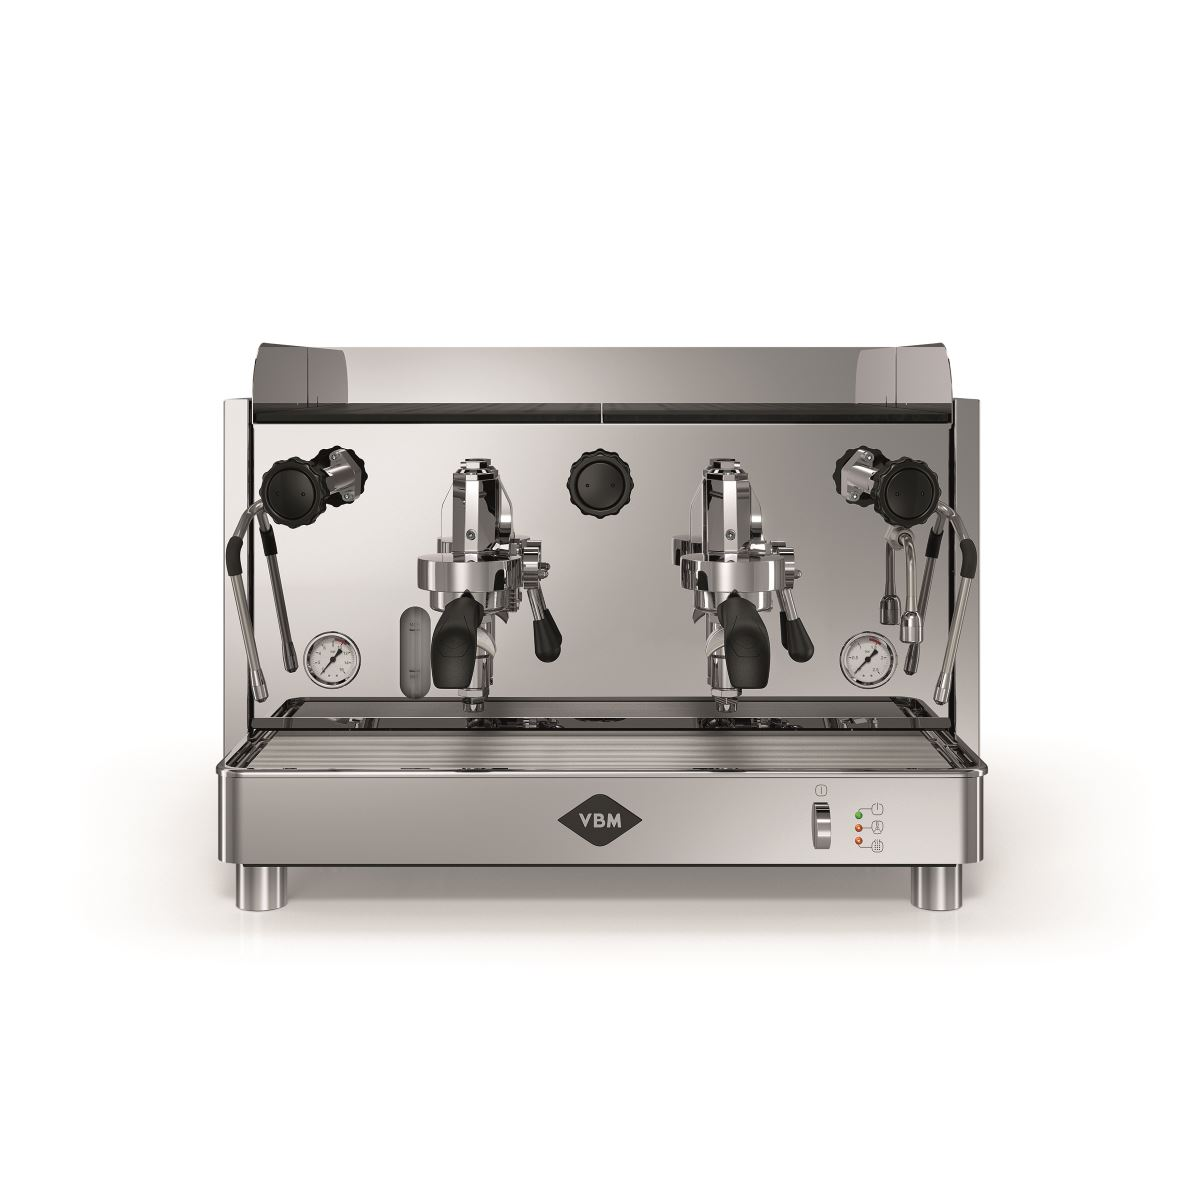 Professional coffee machine Vibiemme Replica HX Manuale, 2 groups